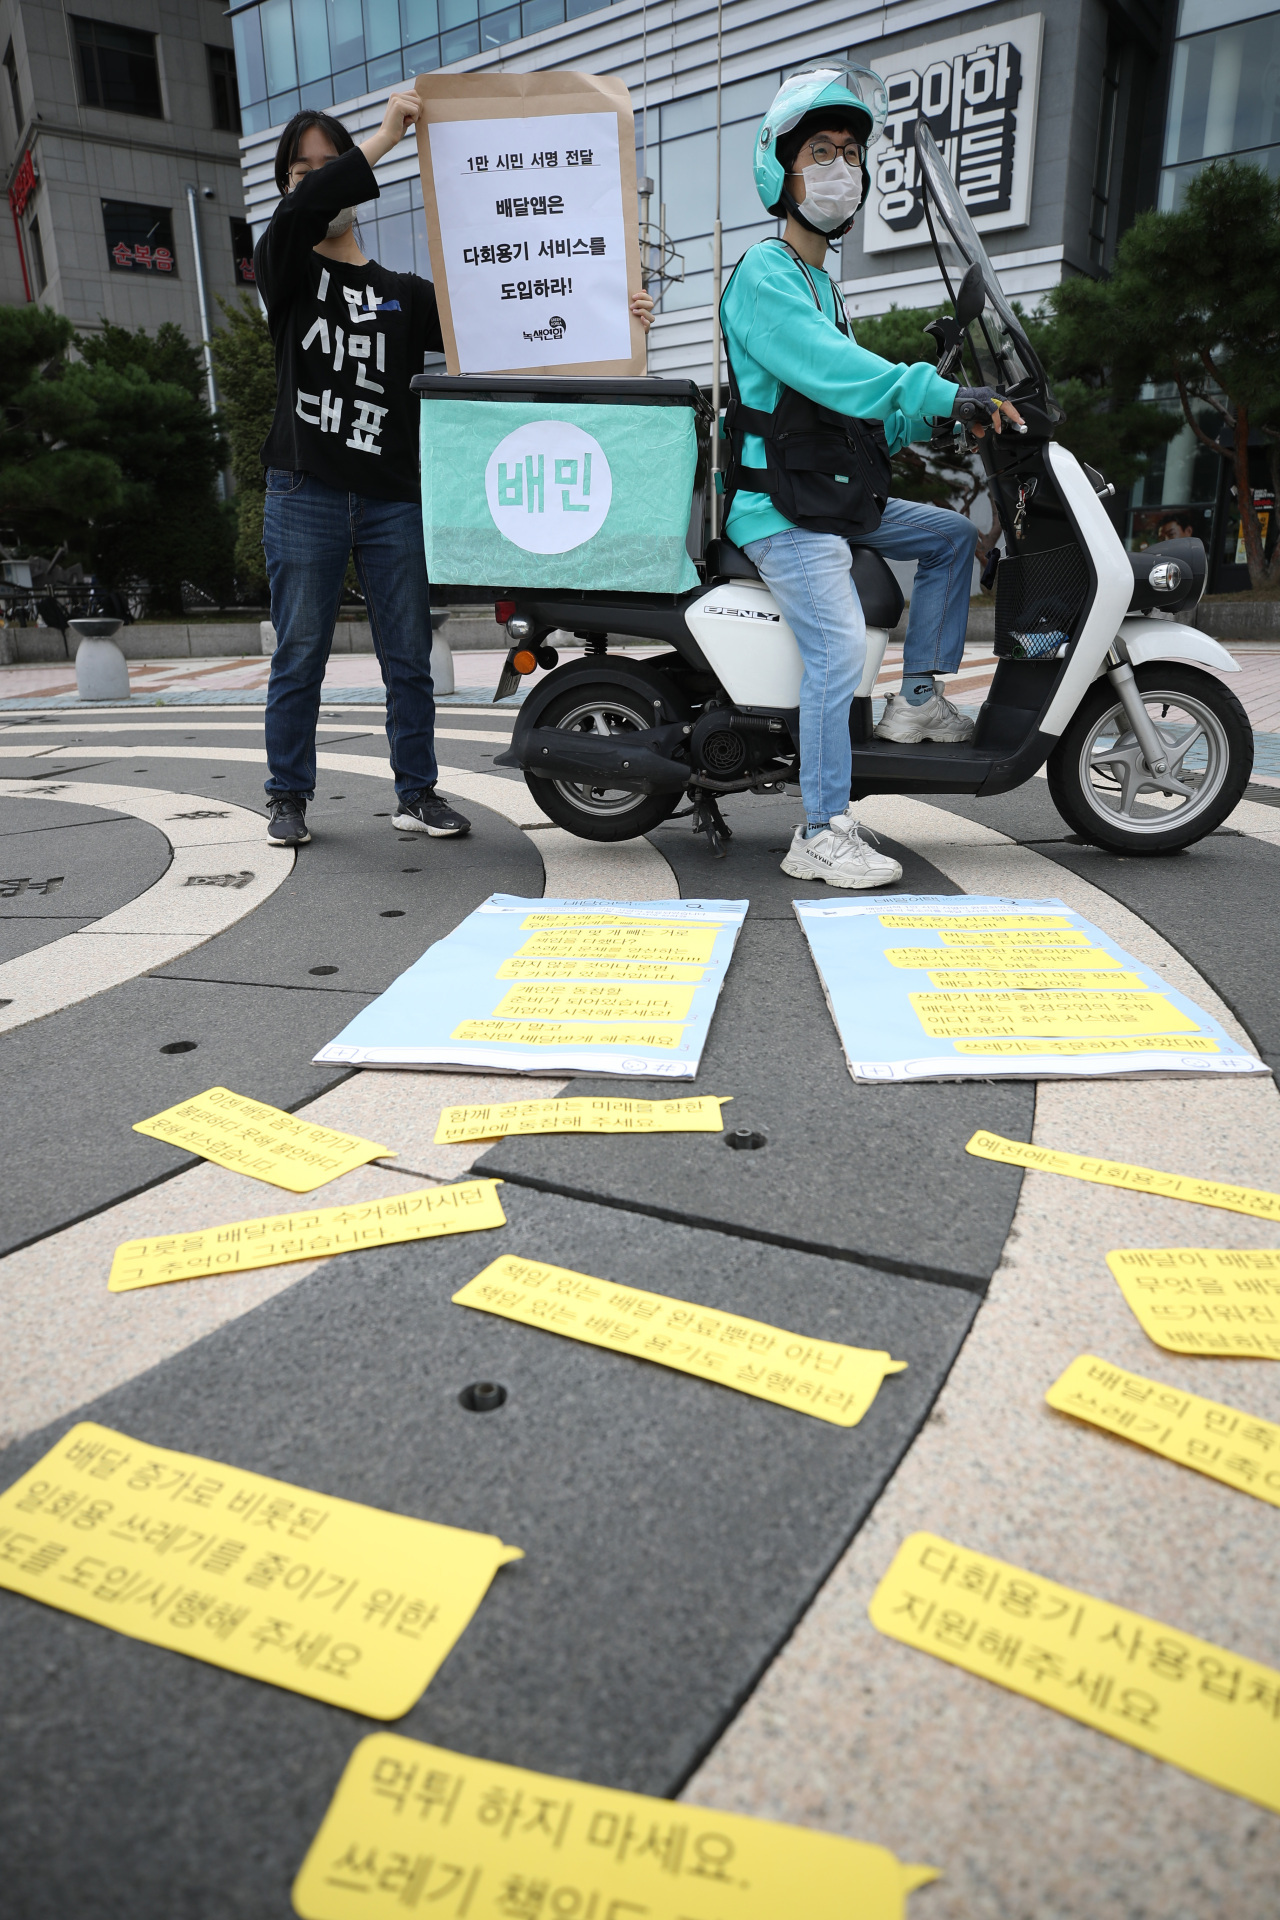 Green Korea and Riders Union hold press conference to call on food delivery platforms to introduce the option of reusable containers in front of Baedal Minjok headquarters in Seoul on Thursday. (Yonhap)